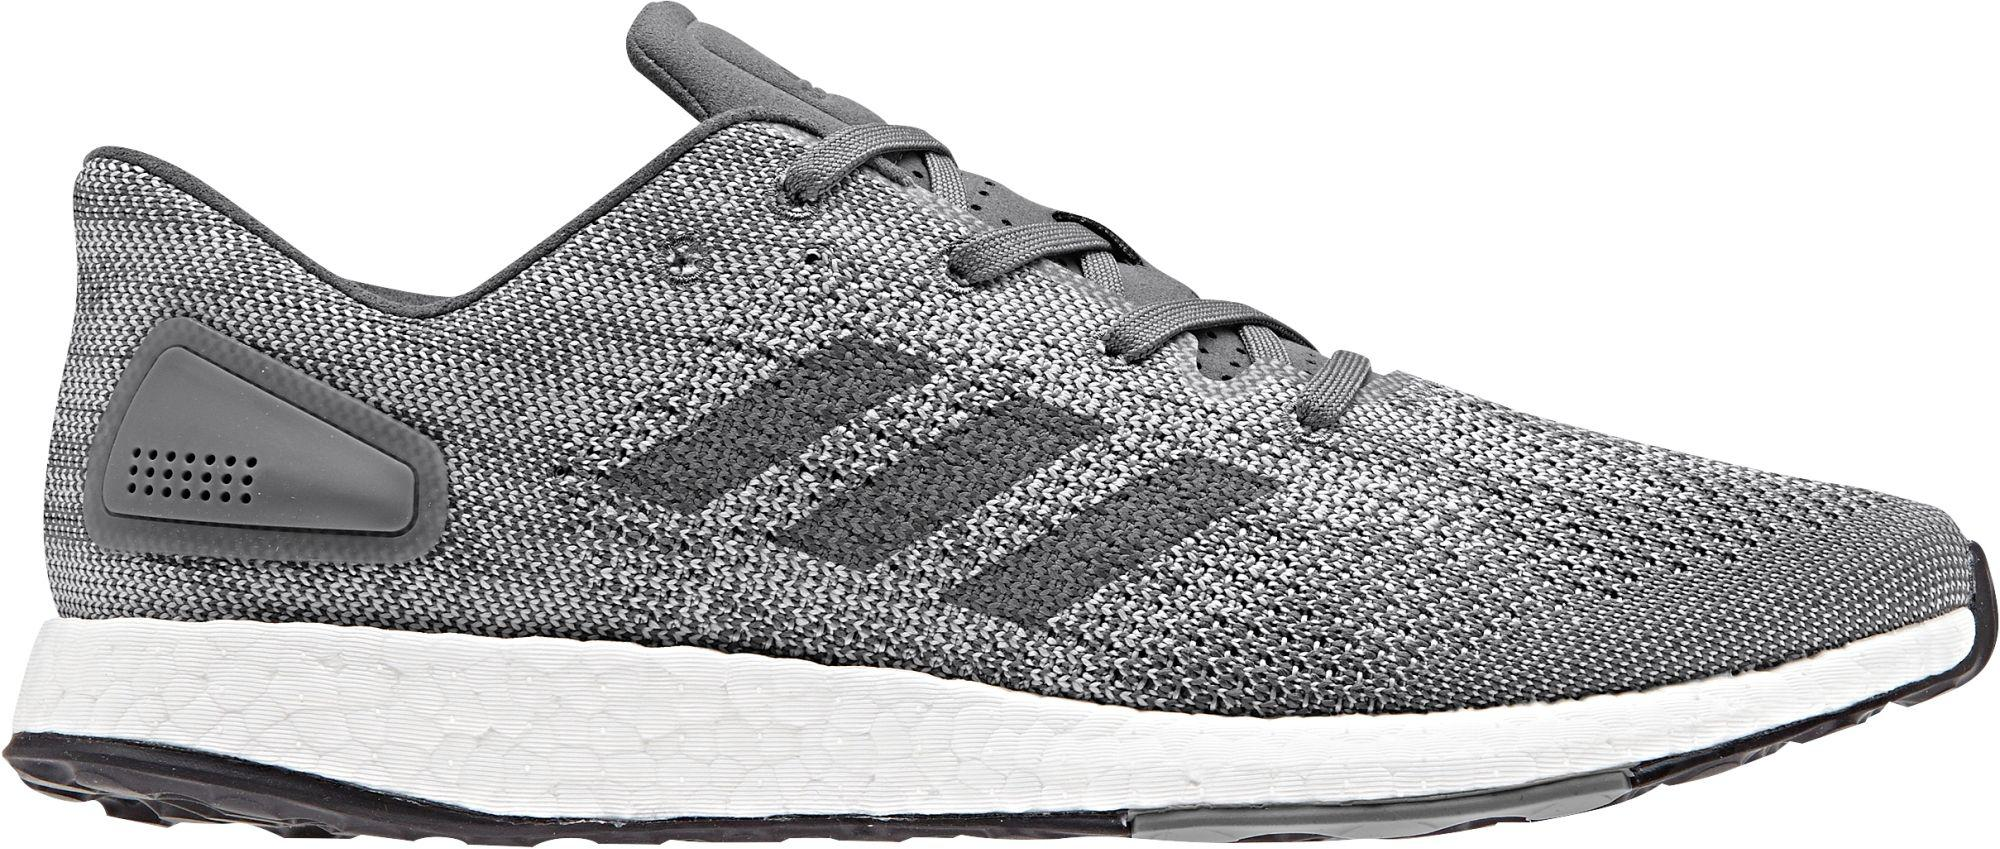 1202611a2 Lyst - Adidas Pureboost Dpr Running Shoes in Gray for Men